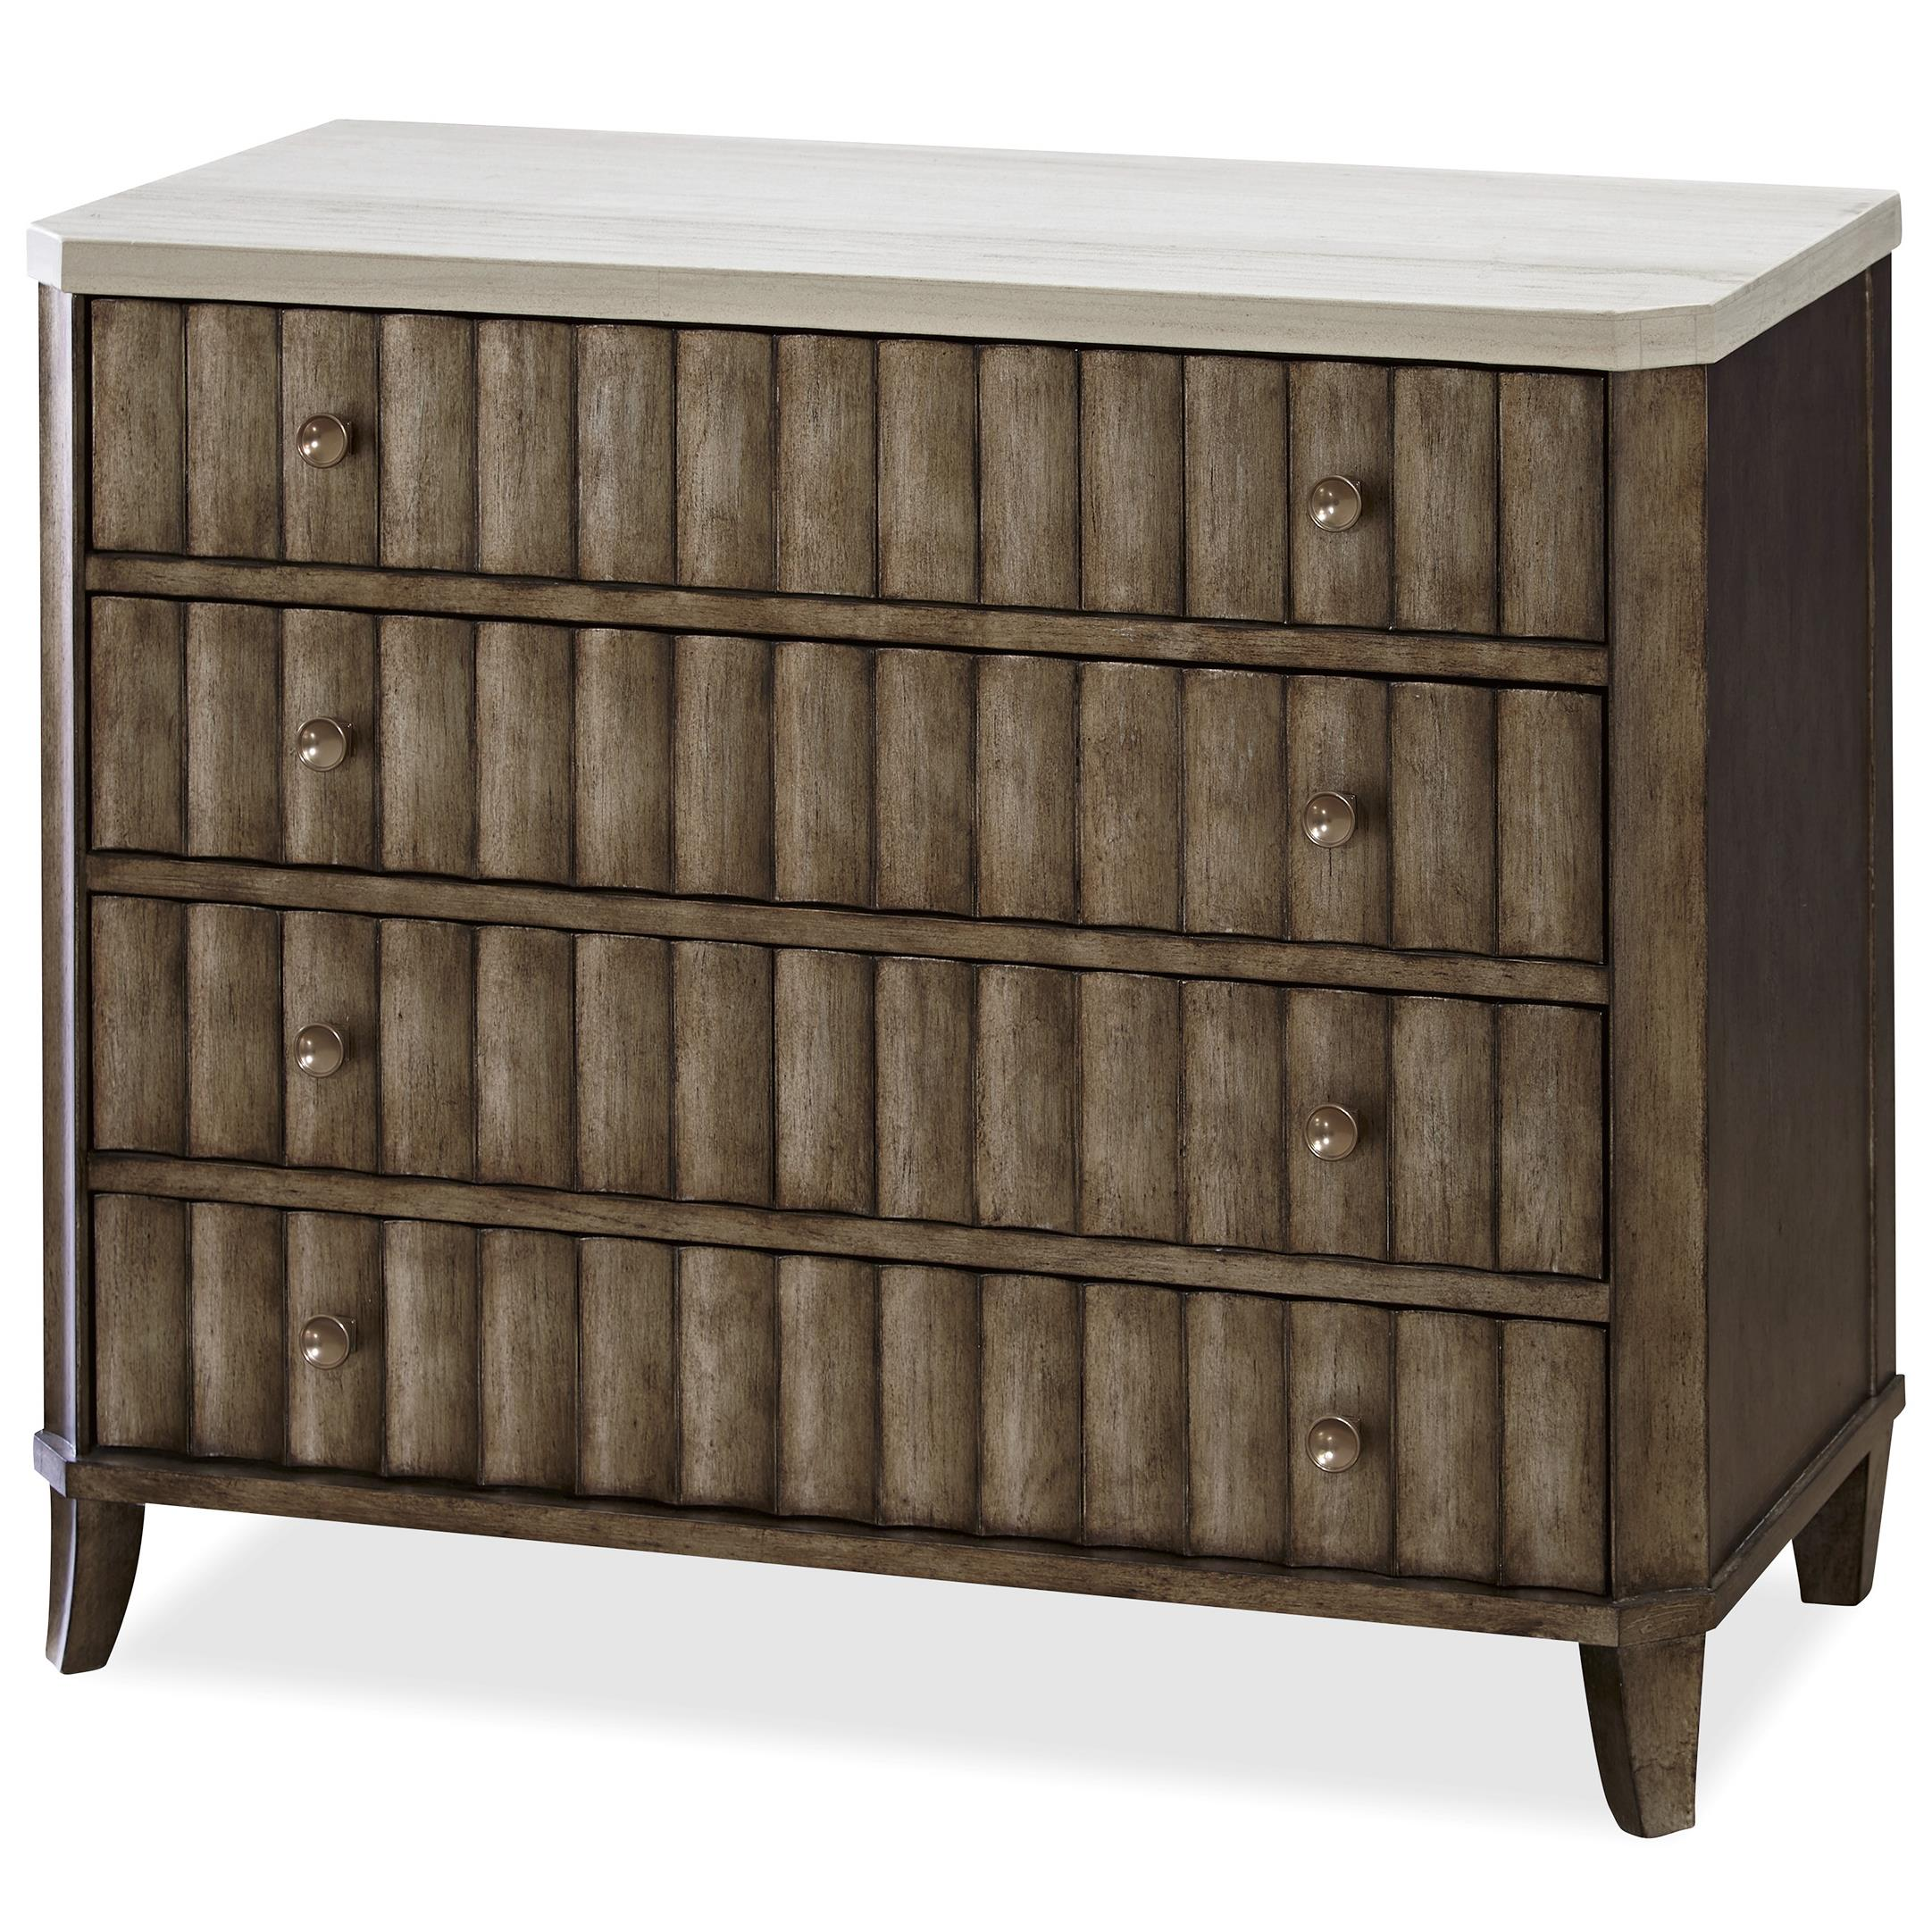 Universal California - Hollywood Hills Accent Chest with Stone Top - Item Number: 475360